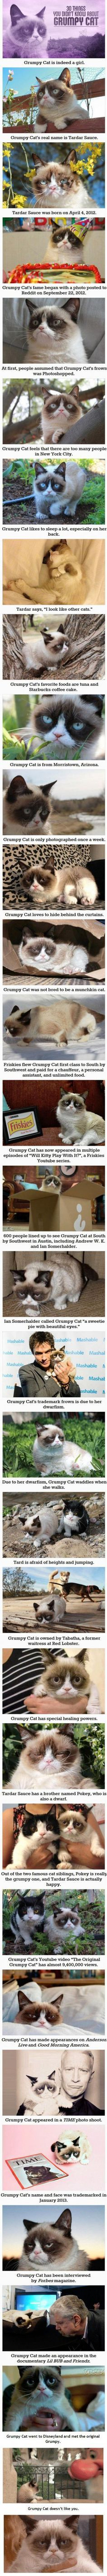 Things That You Probably Didn't Know About Grumpy Cat... Hey, Grumpy Cat is from Arizona!  Go Grumpy Cat. ..